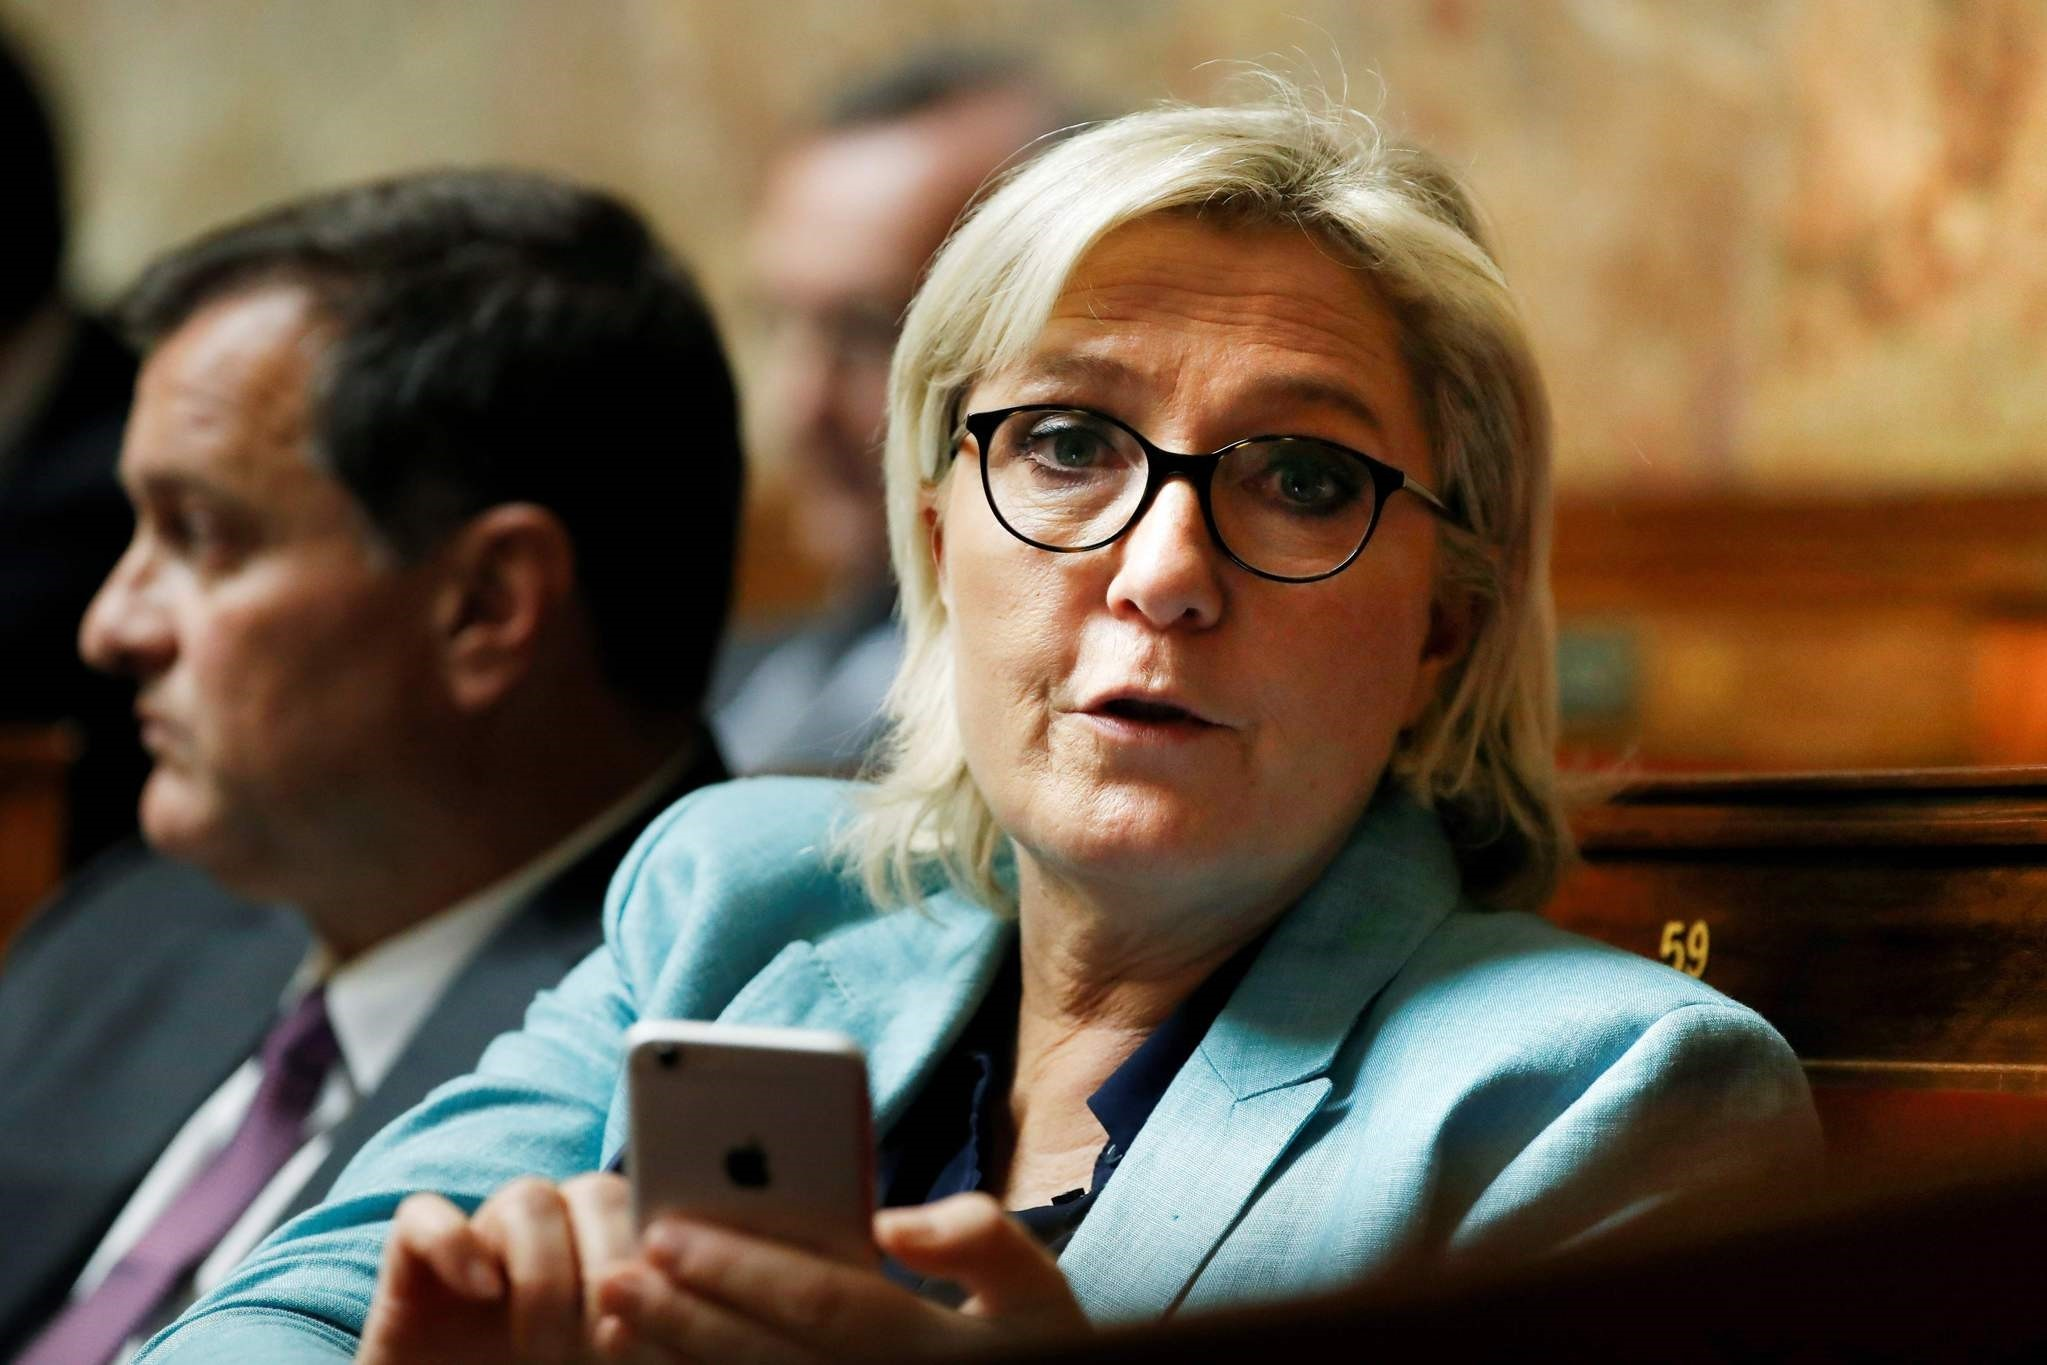 This file photo taken on Oct. 17, 2017 shows FN party leader Le Pen holding her mobile phone as she attends a session of questions to the government at the French National Assembly. (AFP Photo)